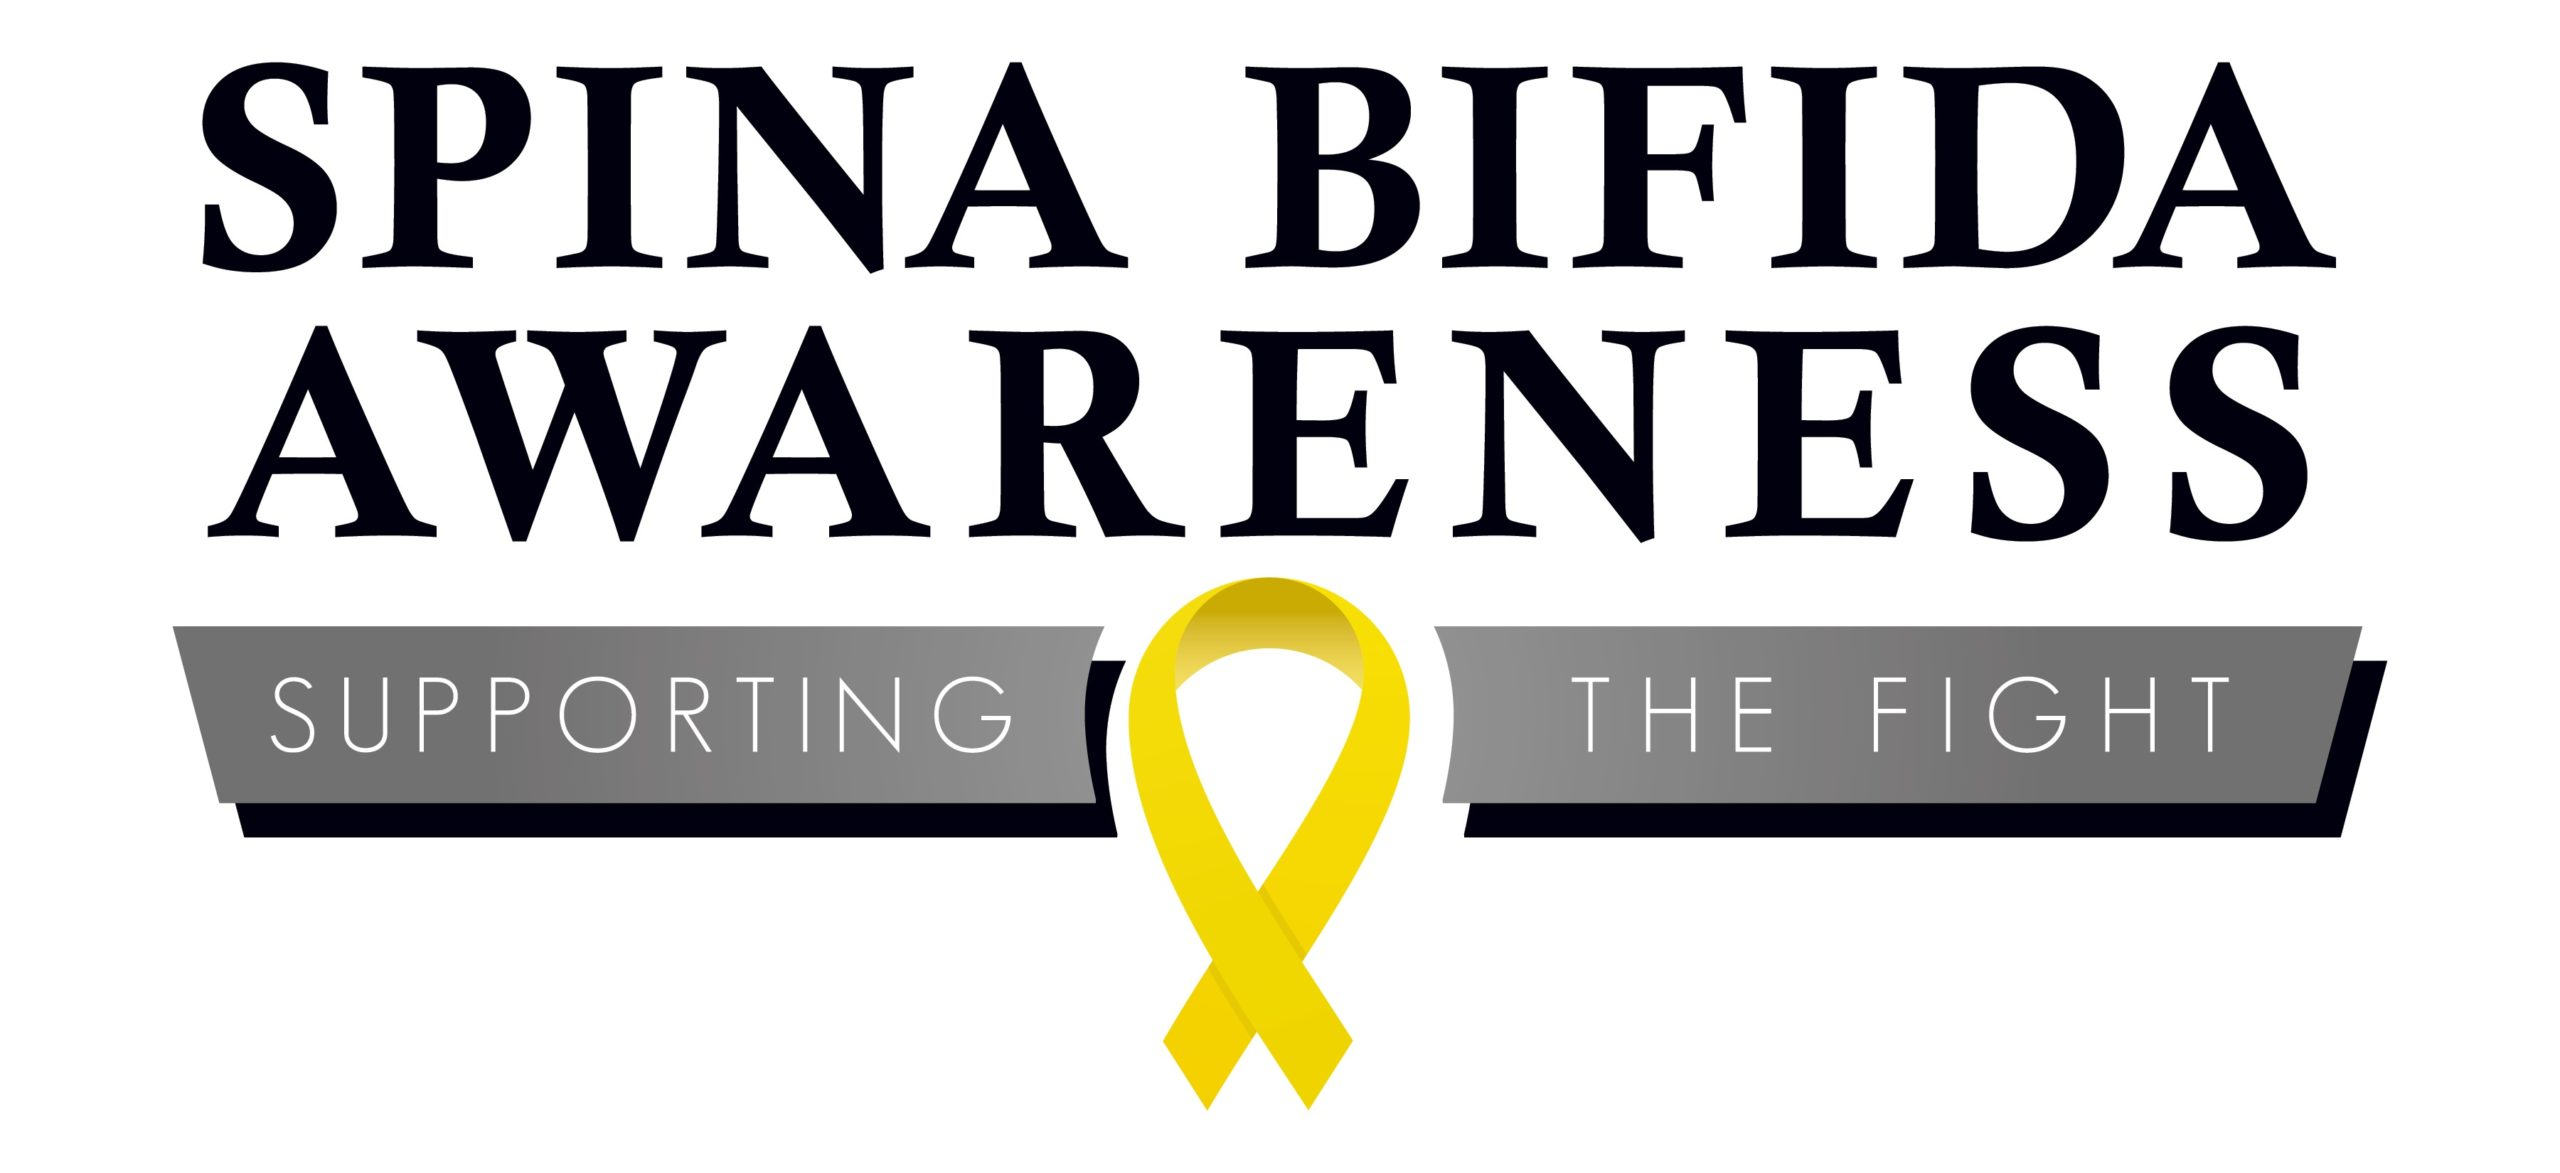 Spina Bifida Awareness Sign